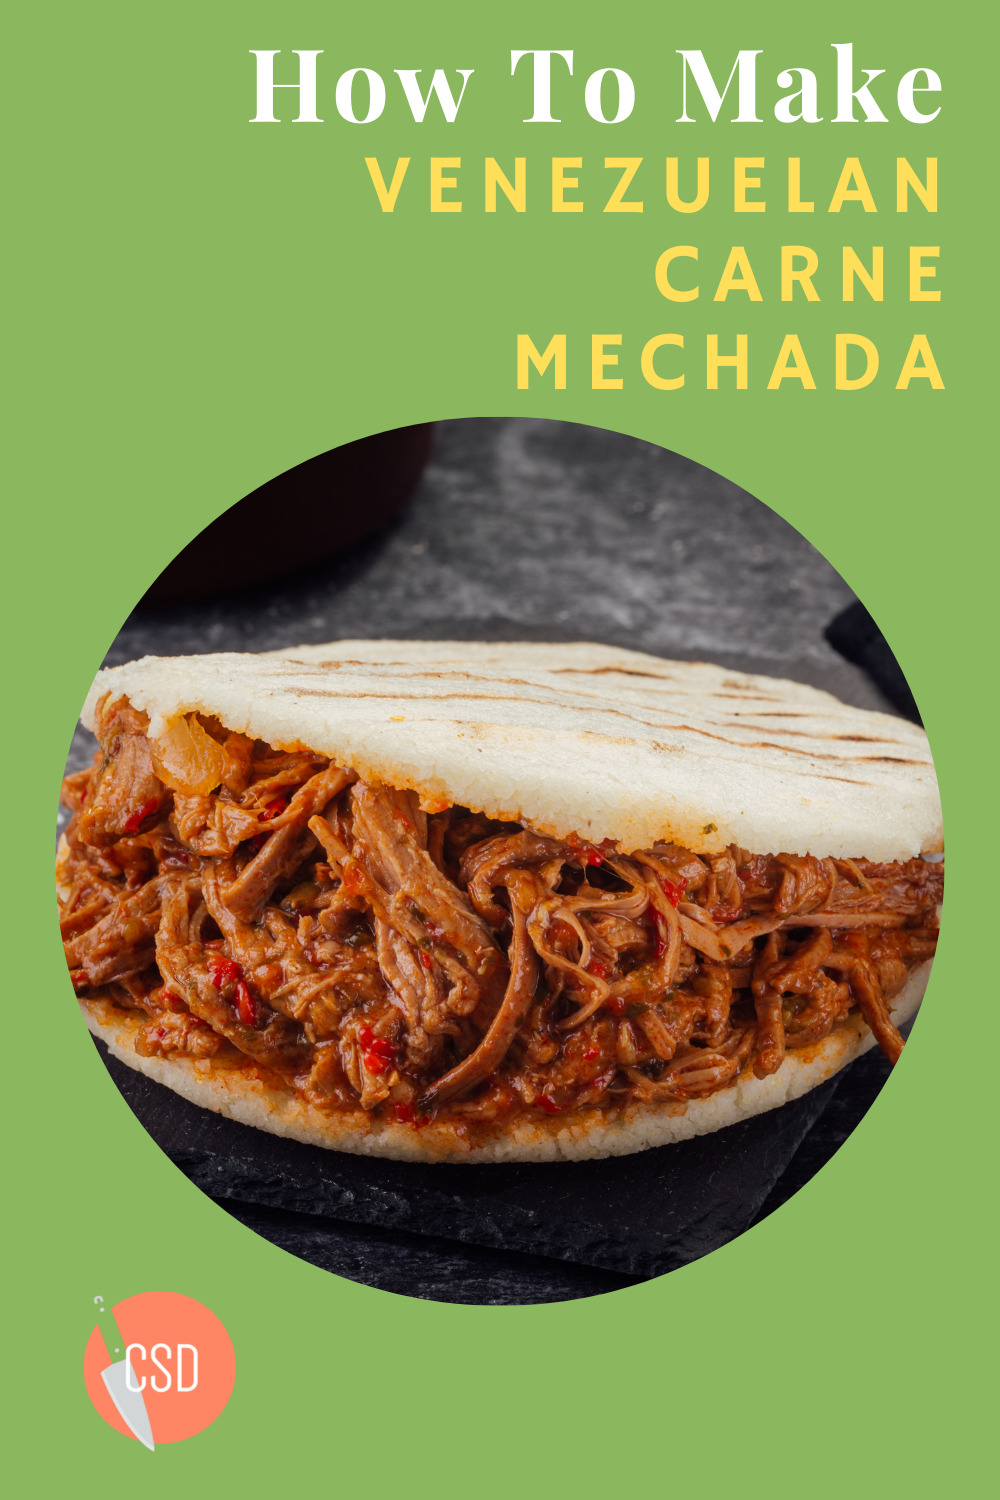 Cutsidedown.com is loaded with the best food and drink recipe ideas for any occasion. Find out what you should prepare for your next event. This Carne Mechada recipe will become your family's new staple.